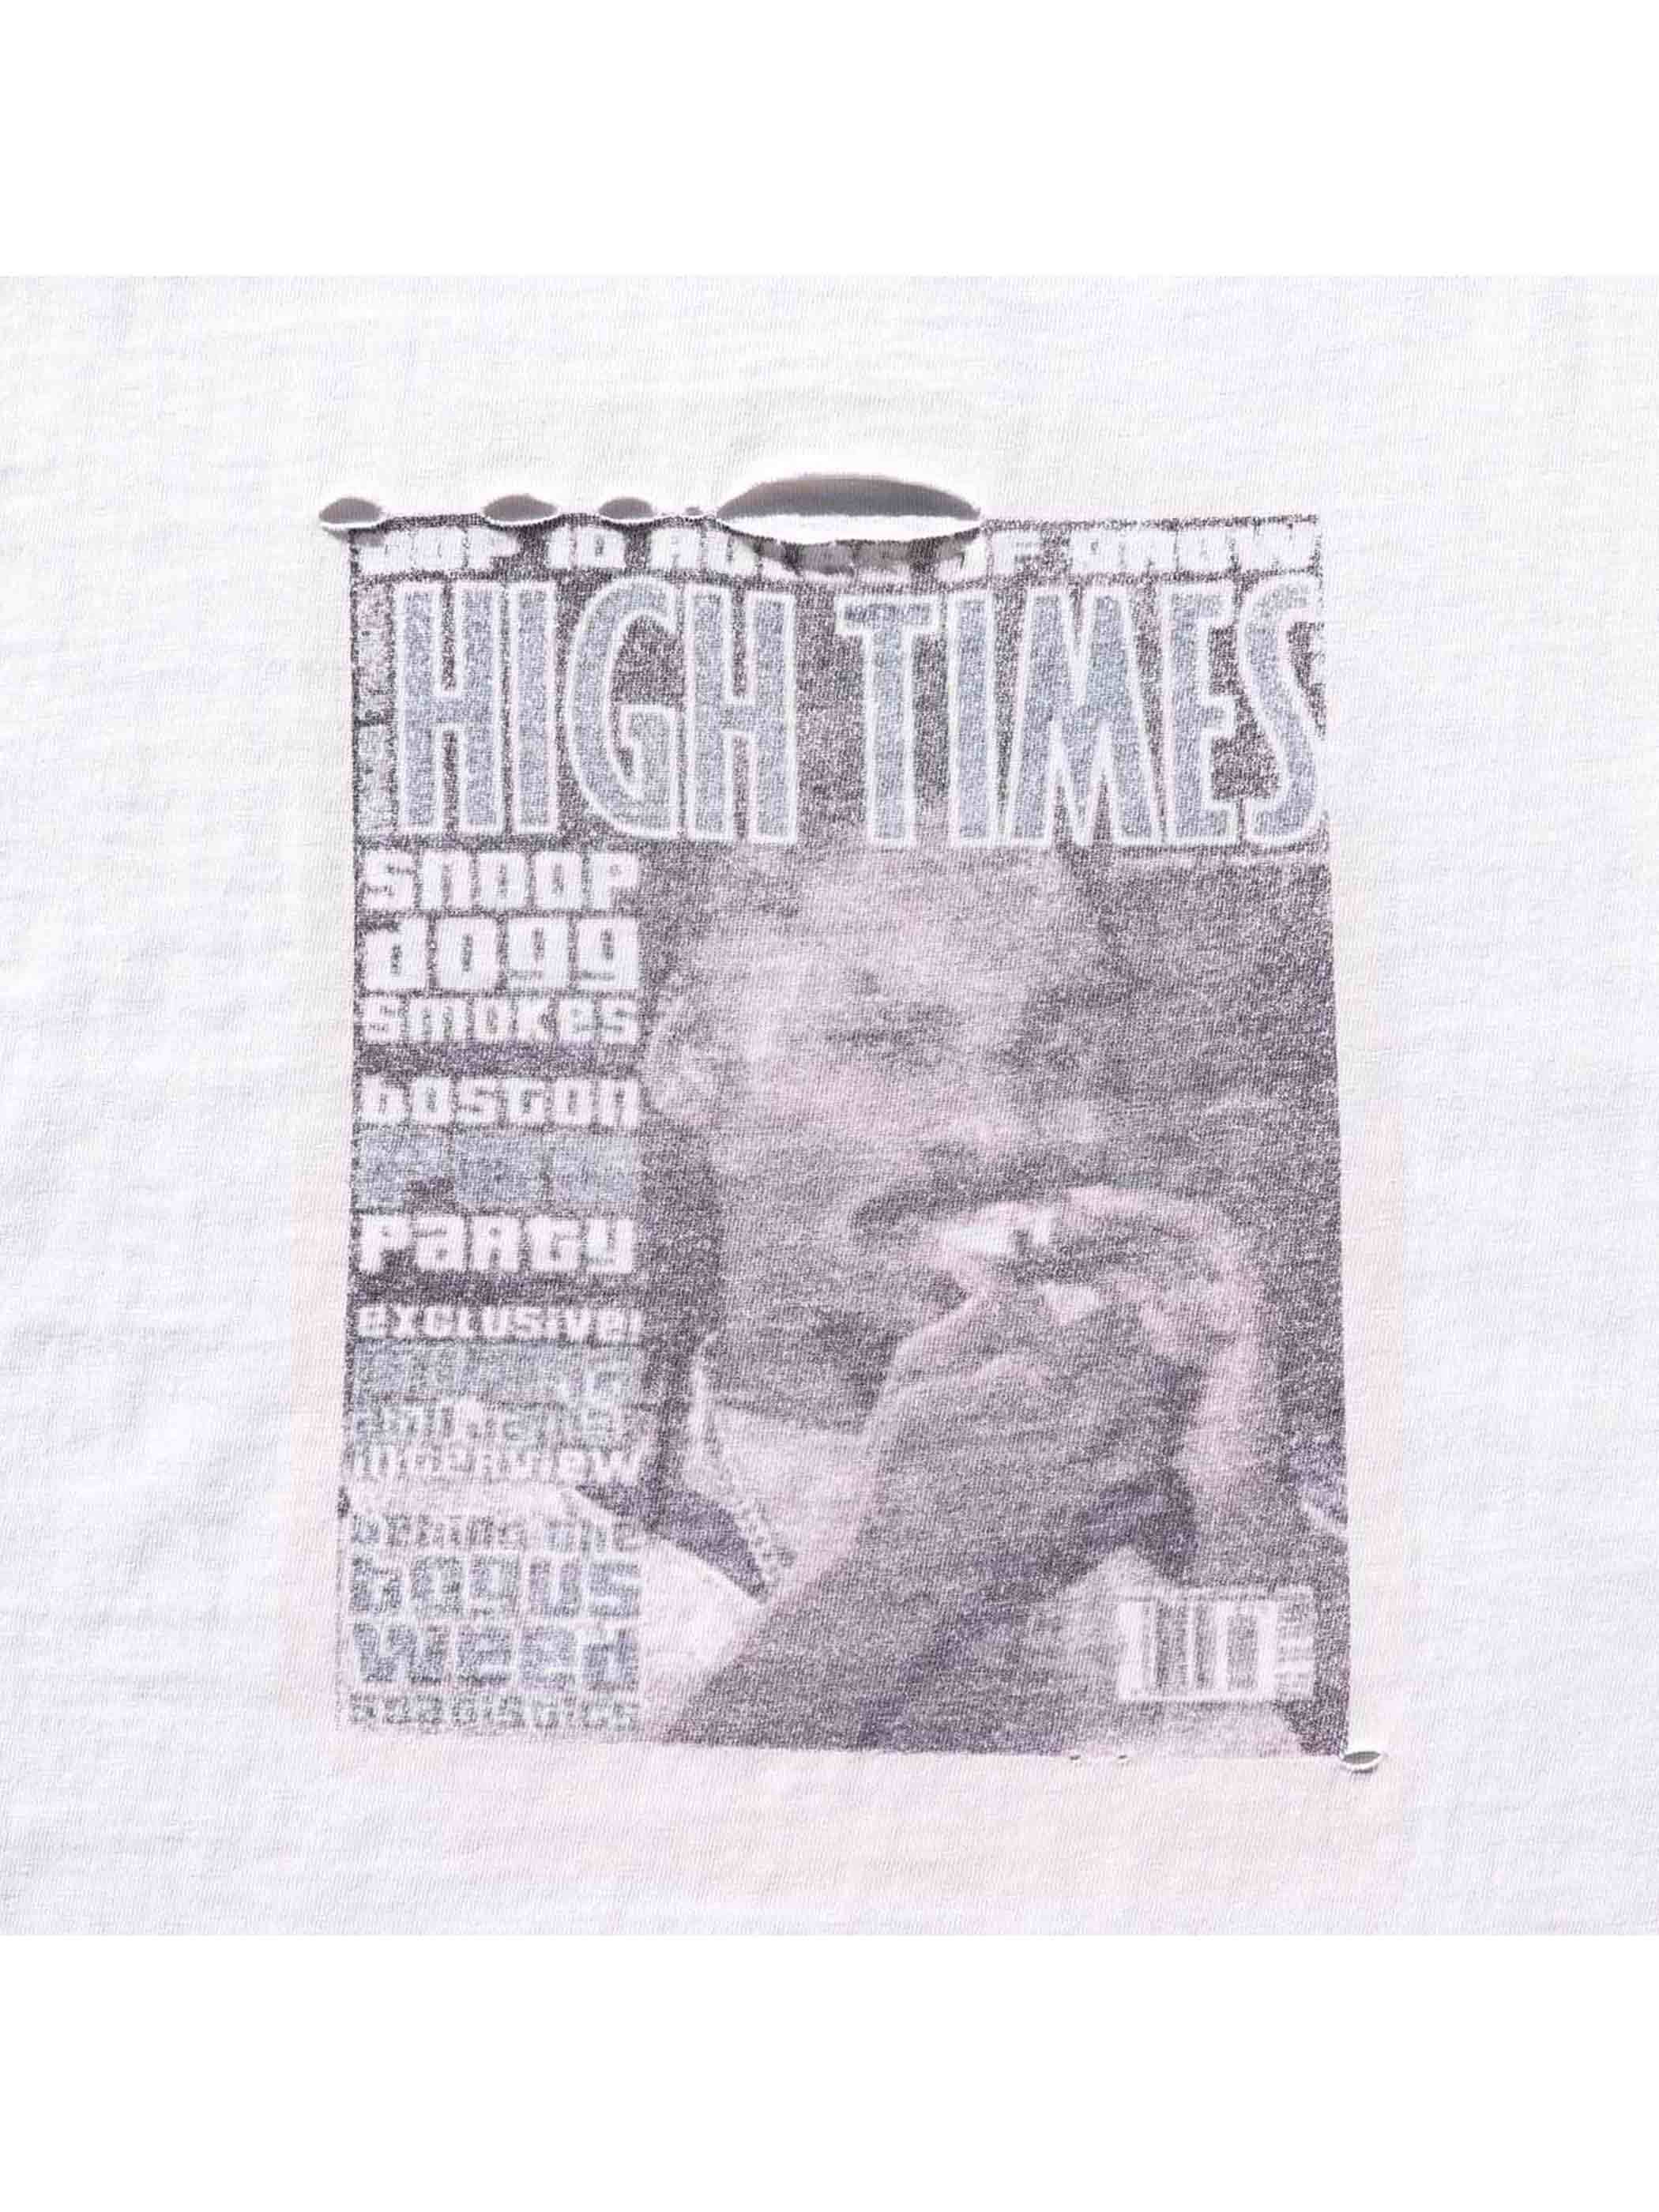 00's K-A-O-S UNDERGROUND RADIO STATION / HIGH TIMES-SNOOP DOGG Tシャツ [XL]